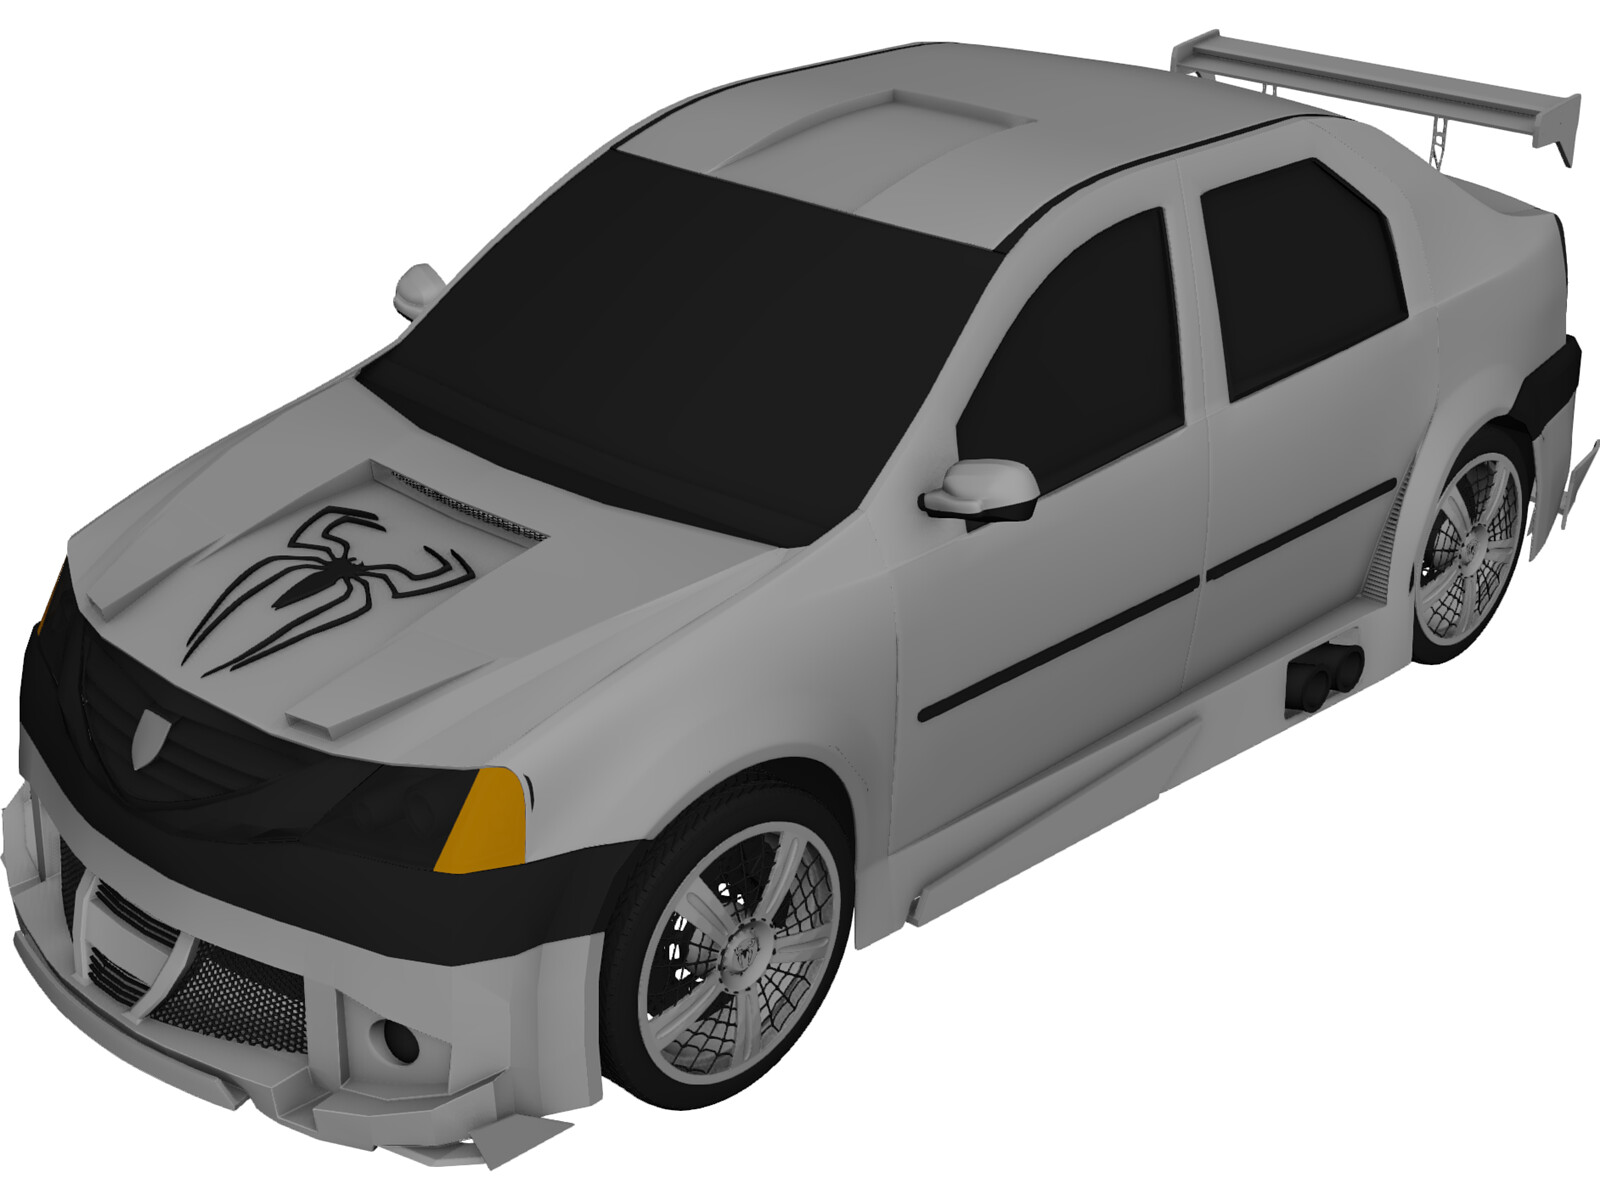 Dacia Logan Tuning 3D Model